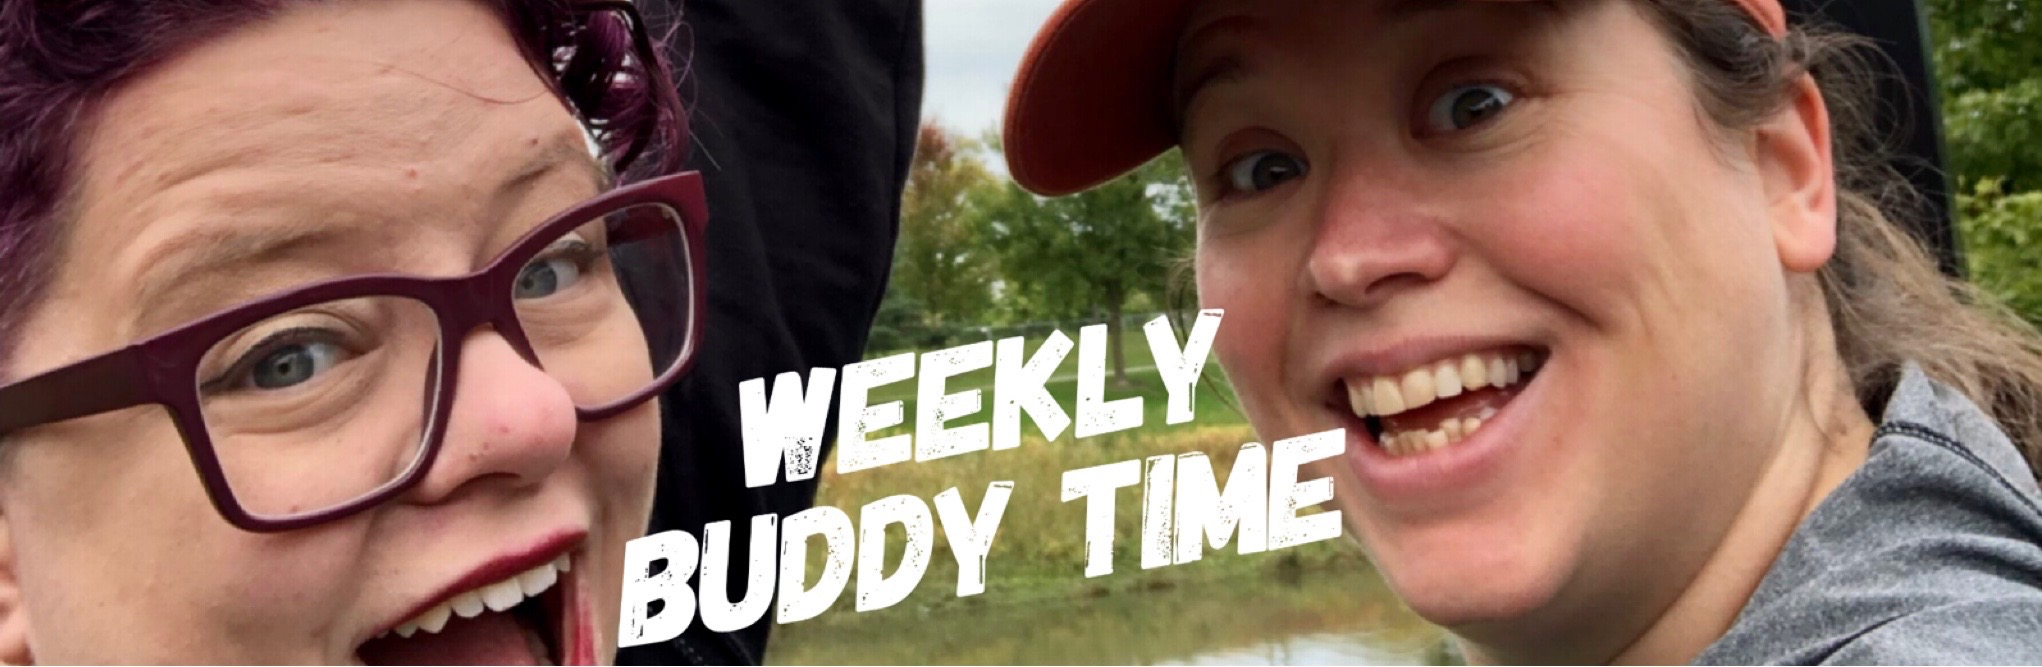 Weekly Buddy Time